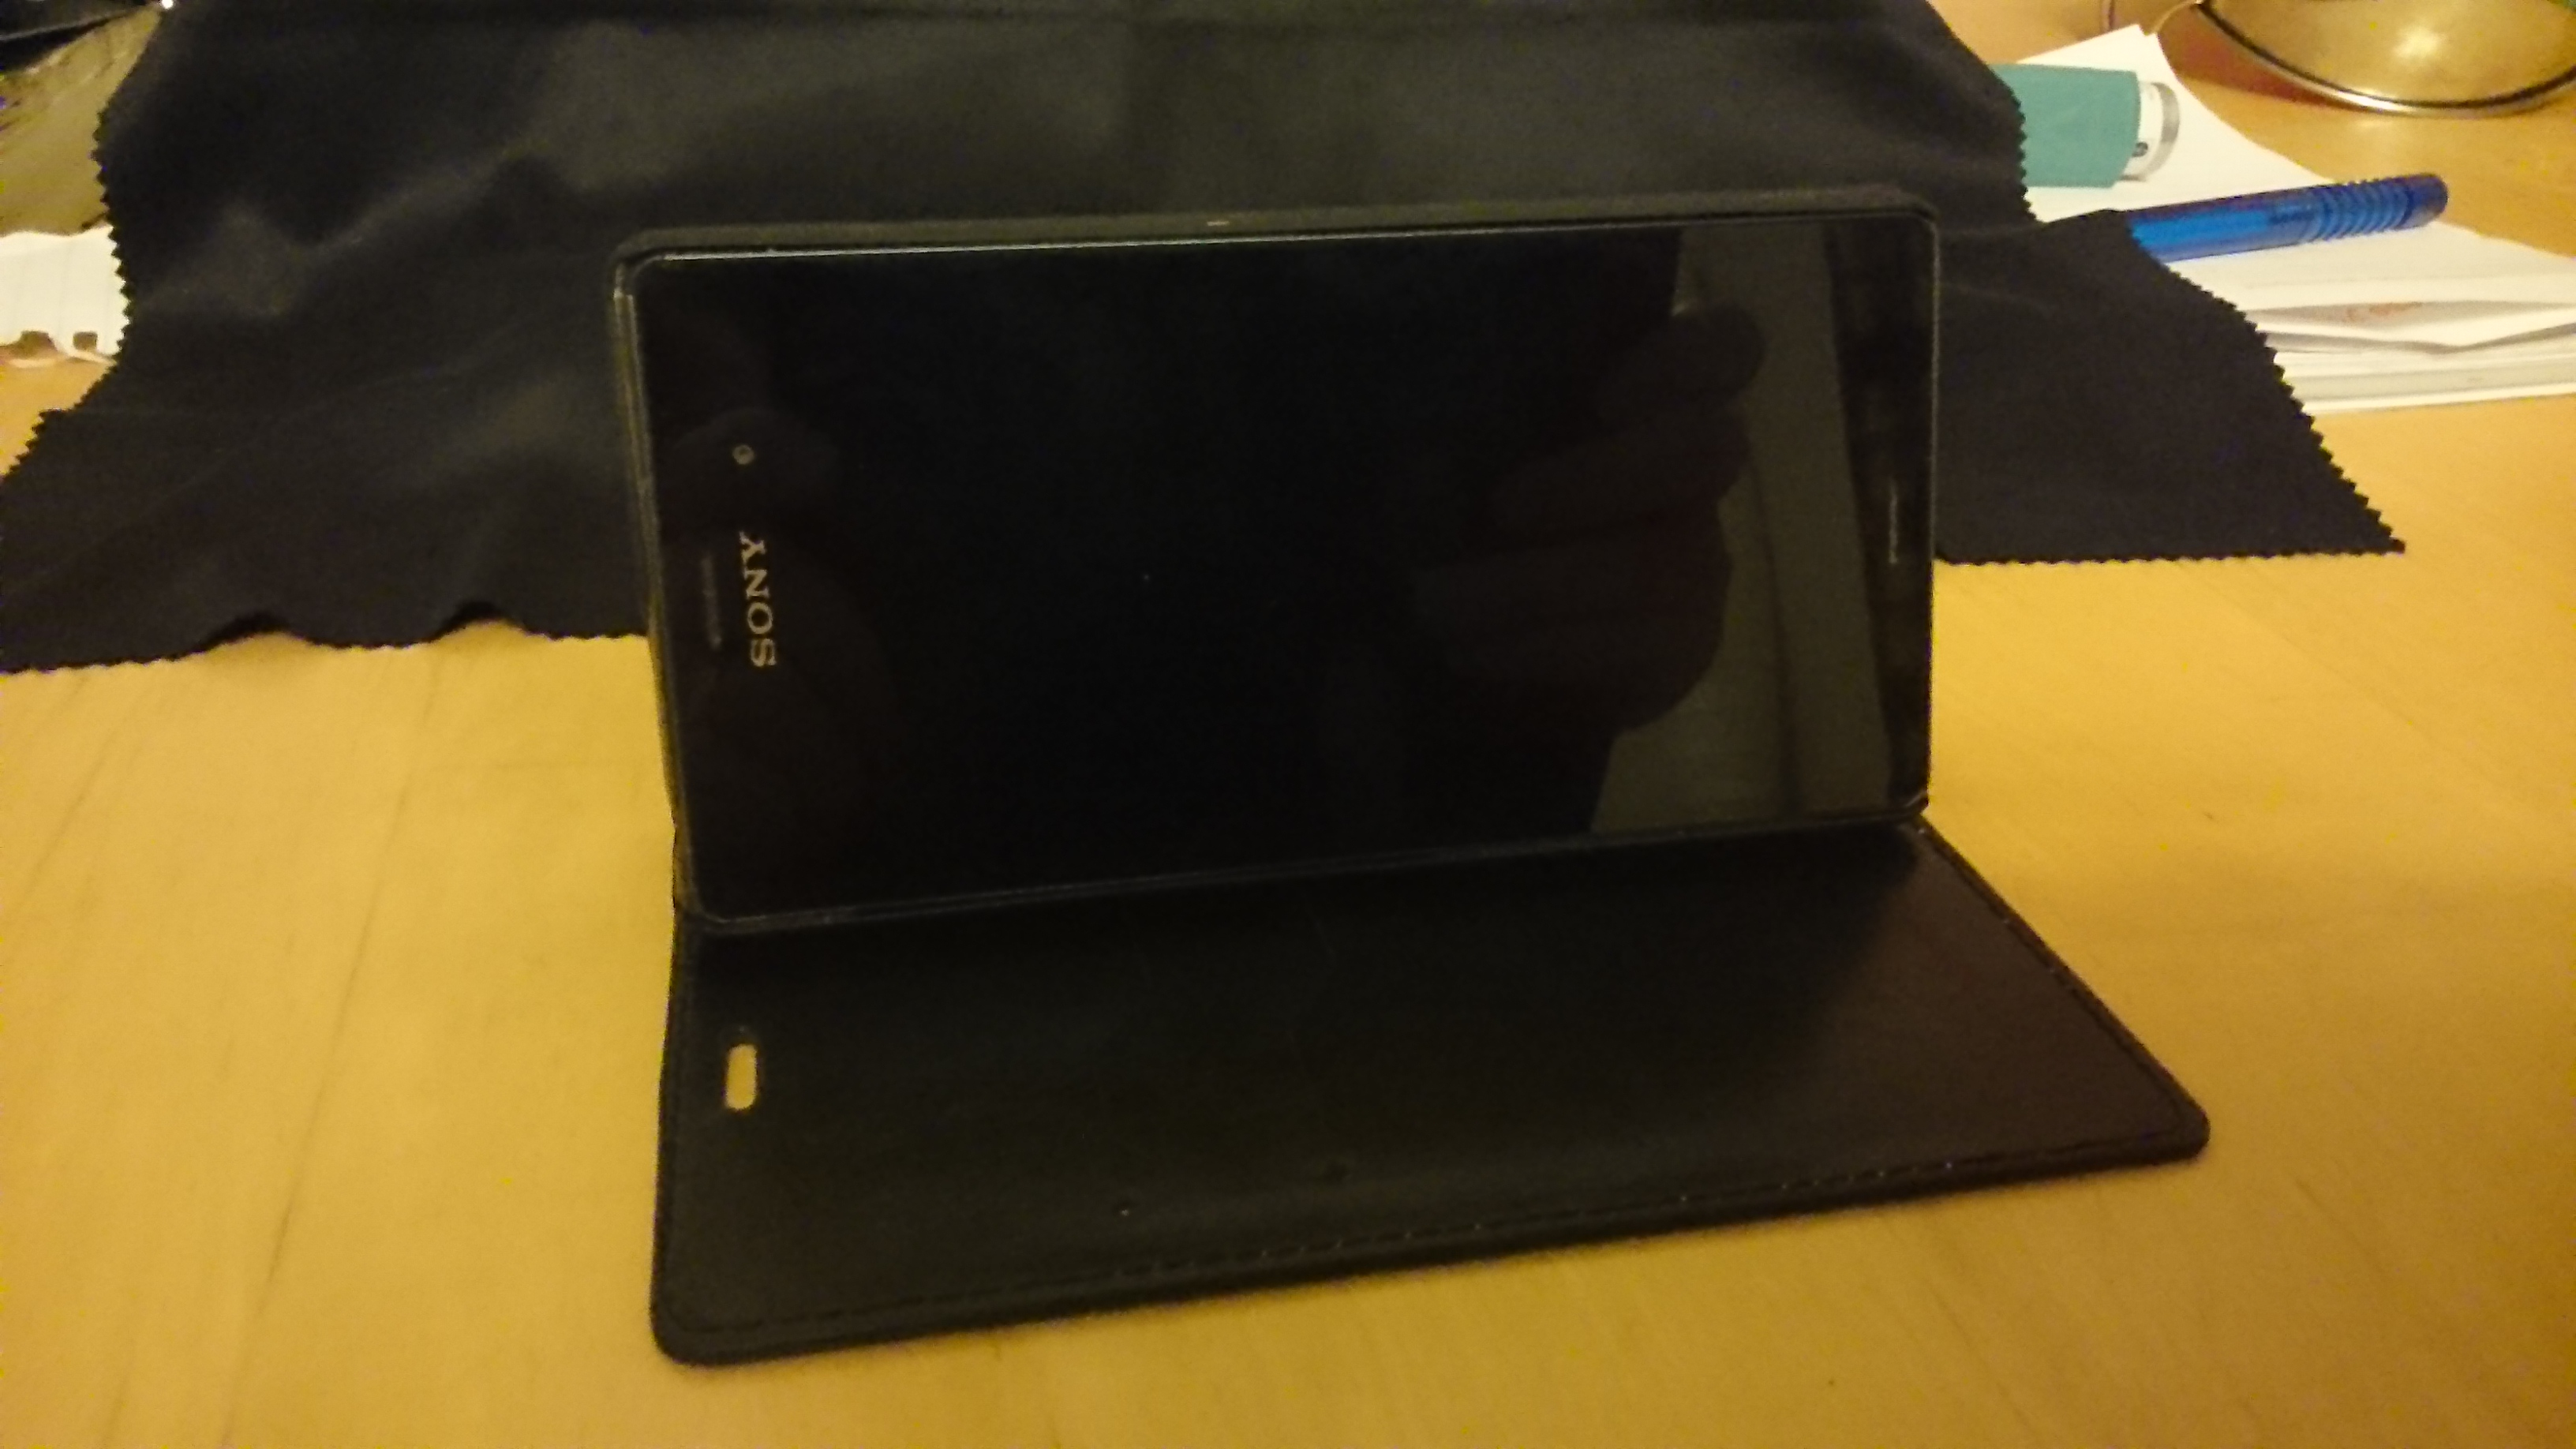 Encase Wallet review for Xperia Z3